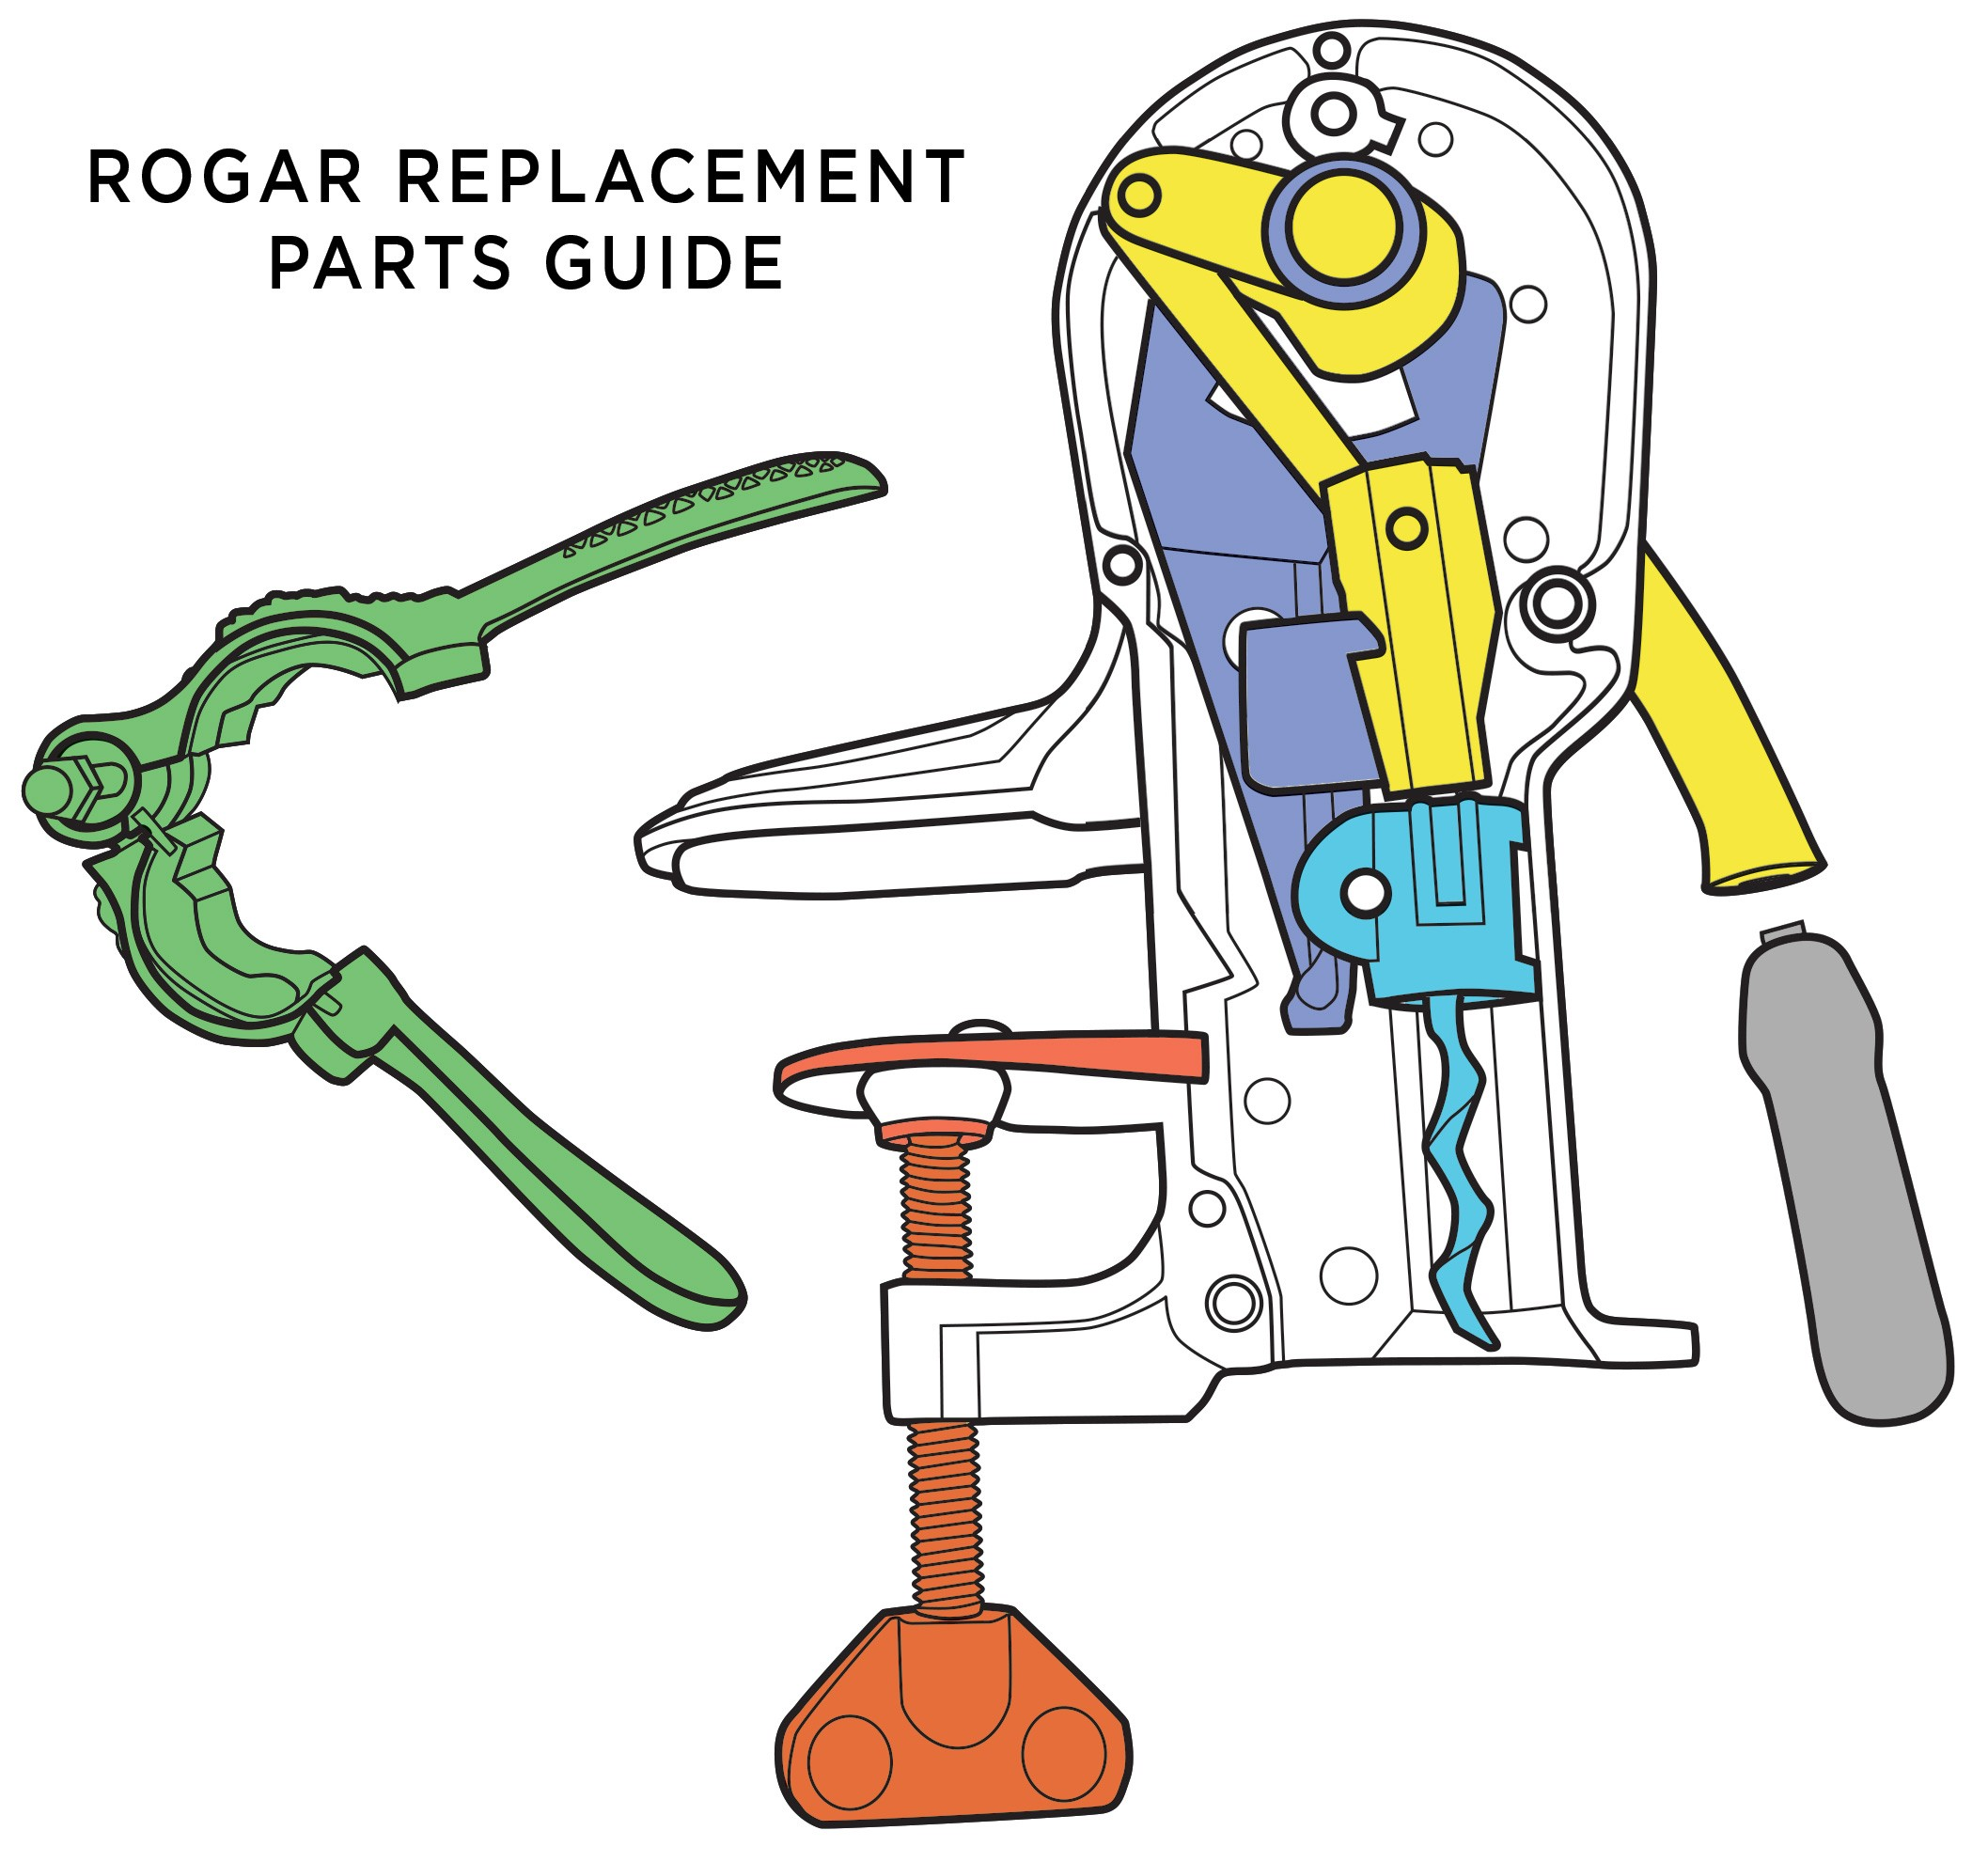 Rogar Replacement Parts Guide